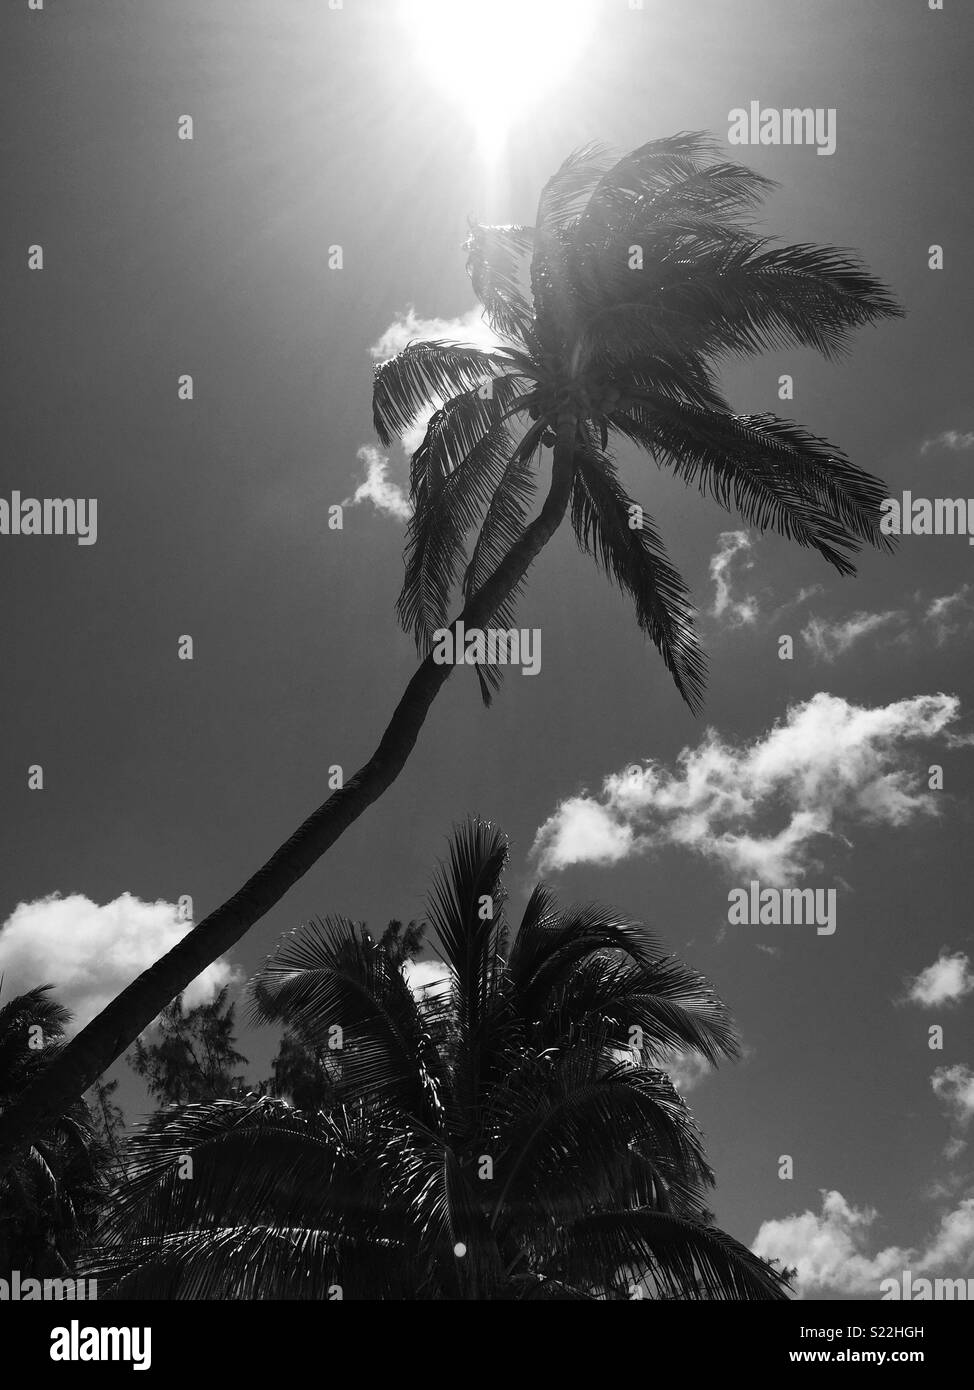 Grand Cayman Black and White Stock Photos & Images - Alamy on turtle farms in the usa, turtle farm grand cayman weddings, turtle farm isla mujeres, turtle island before columbus, turtle farm cayman islands, turtle reef grand cayman, turtle tank in grand cayman, cayman islands map, turtle underwater map,